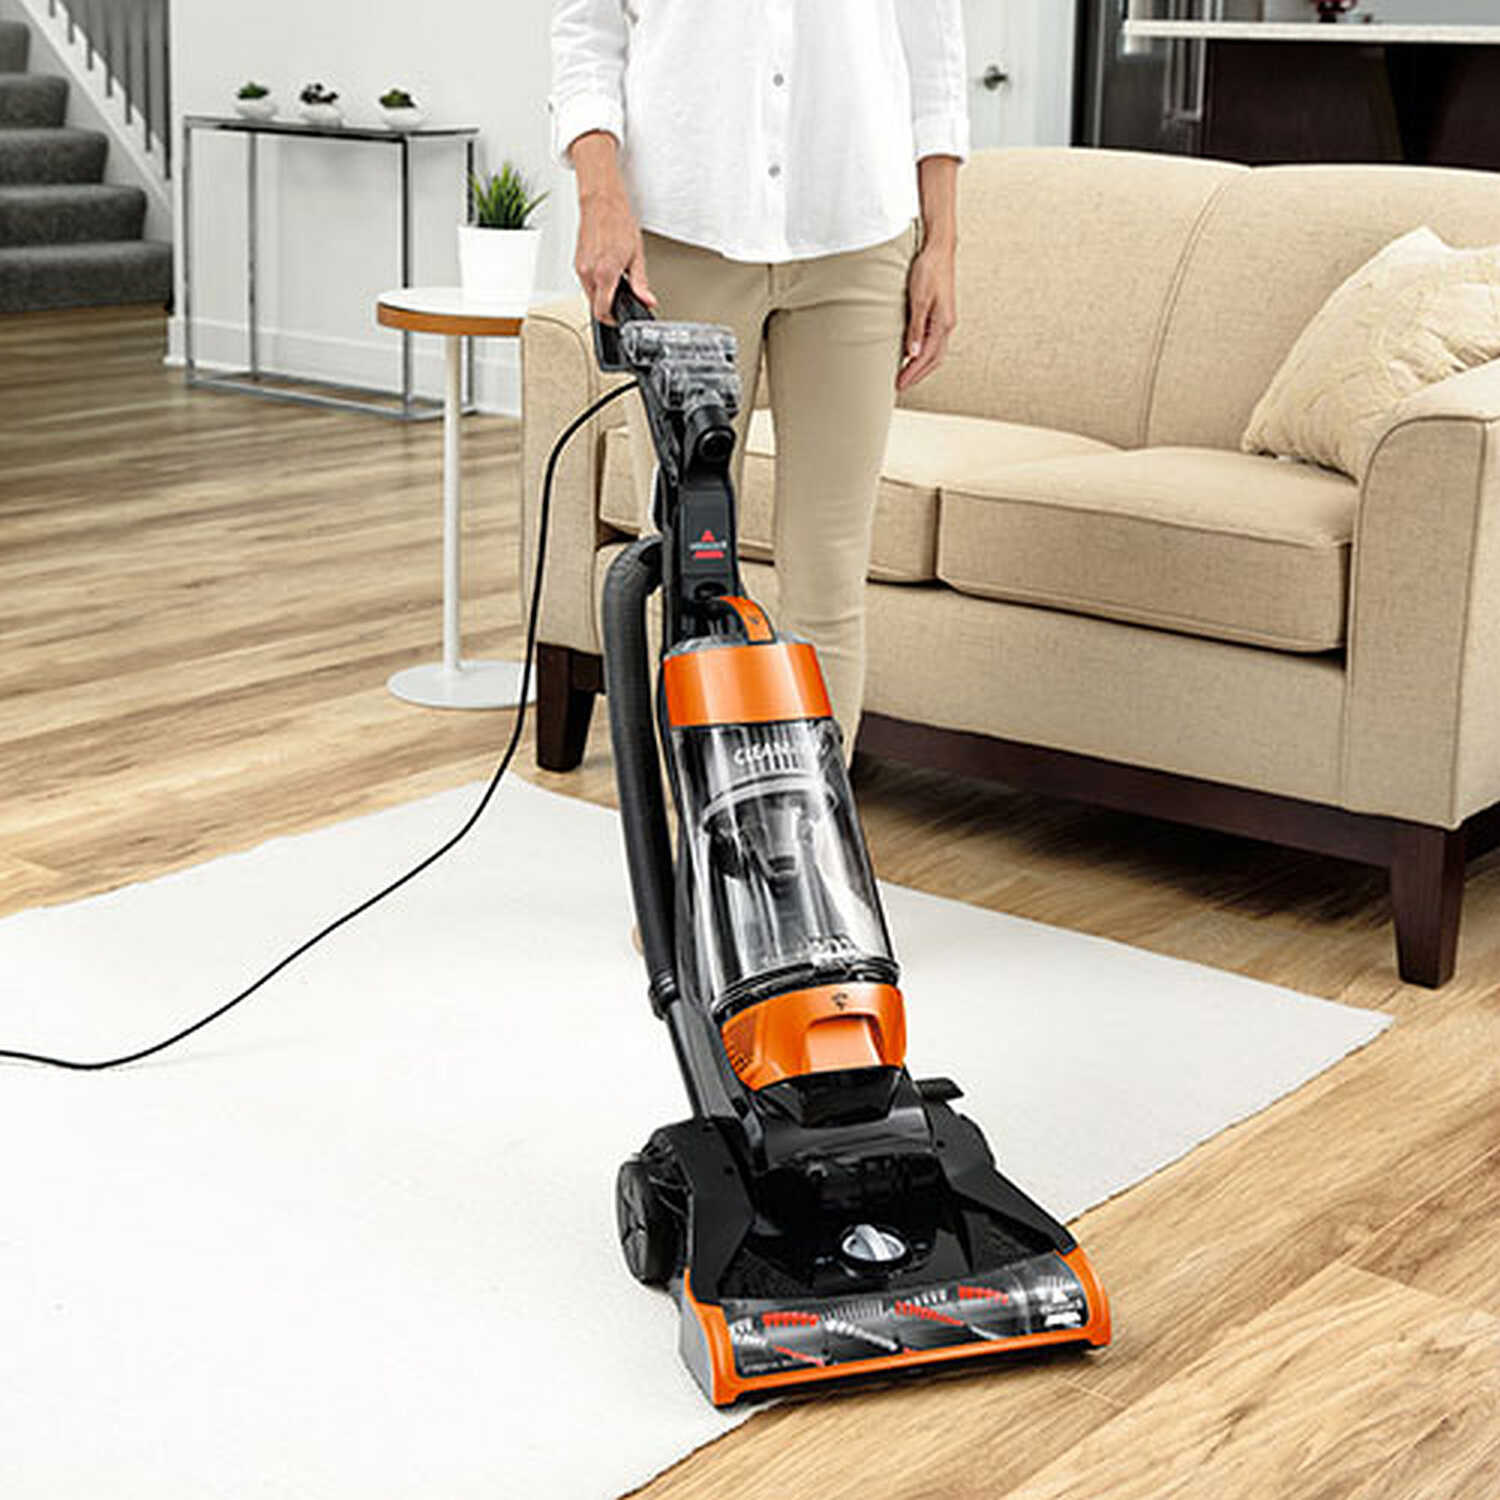 Bissell  CleanView  Bagless  Corded  Upright Vacuum  10 amps Orange  Multi-level